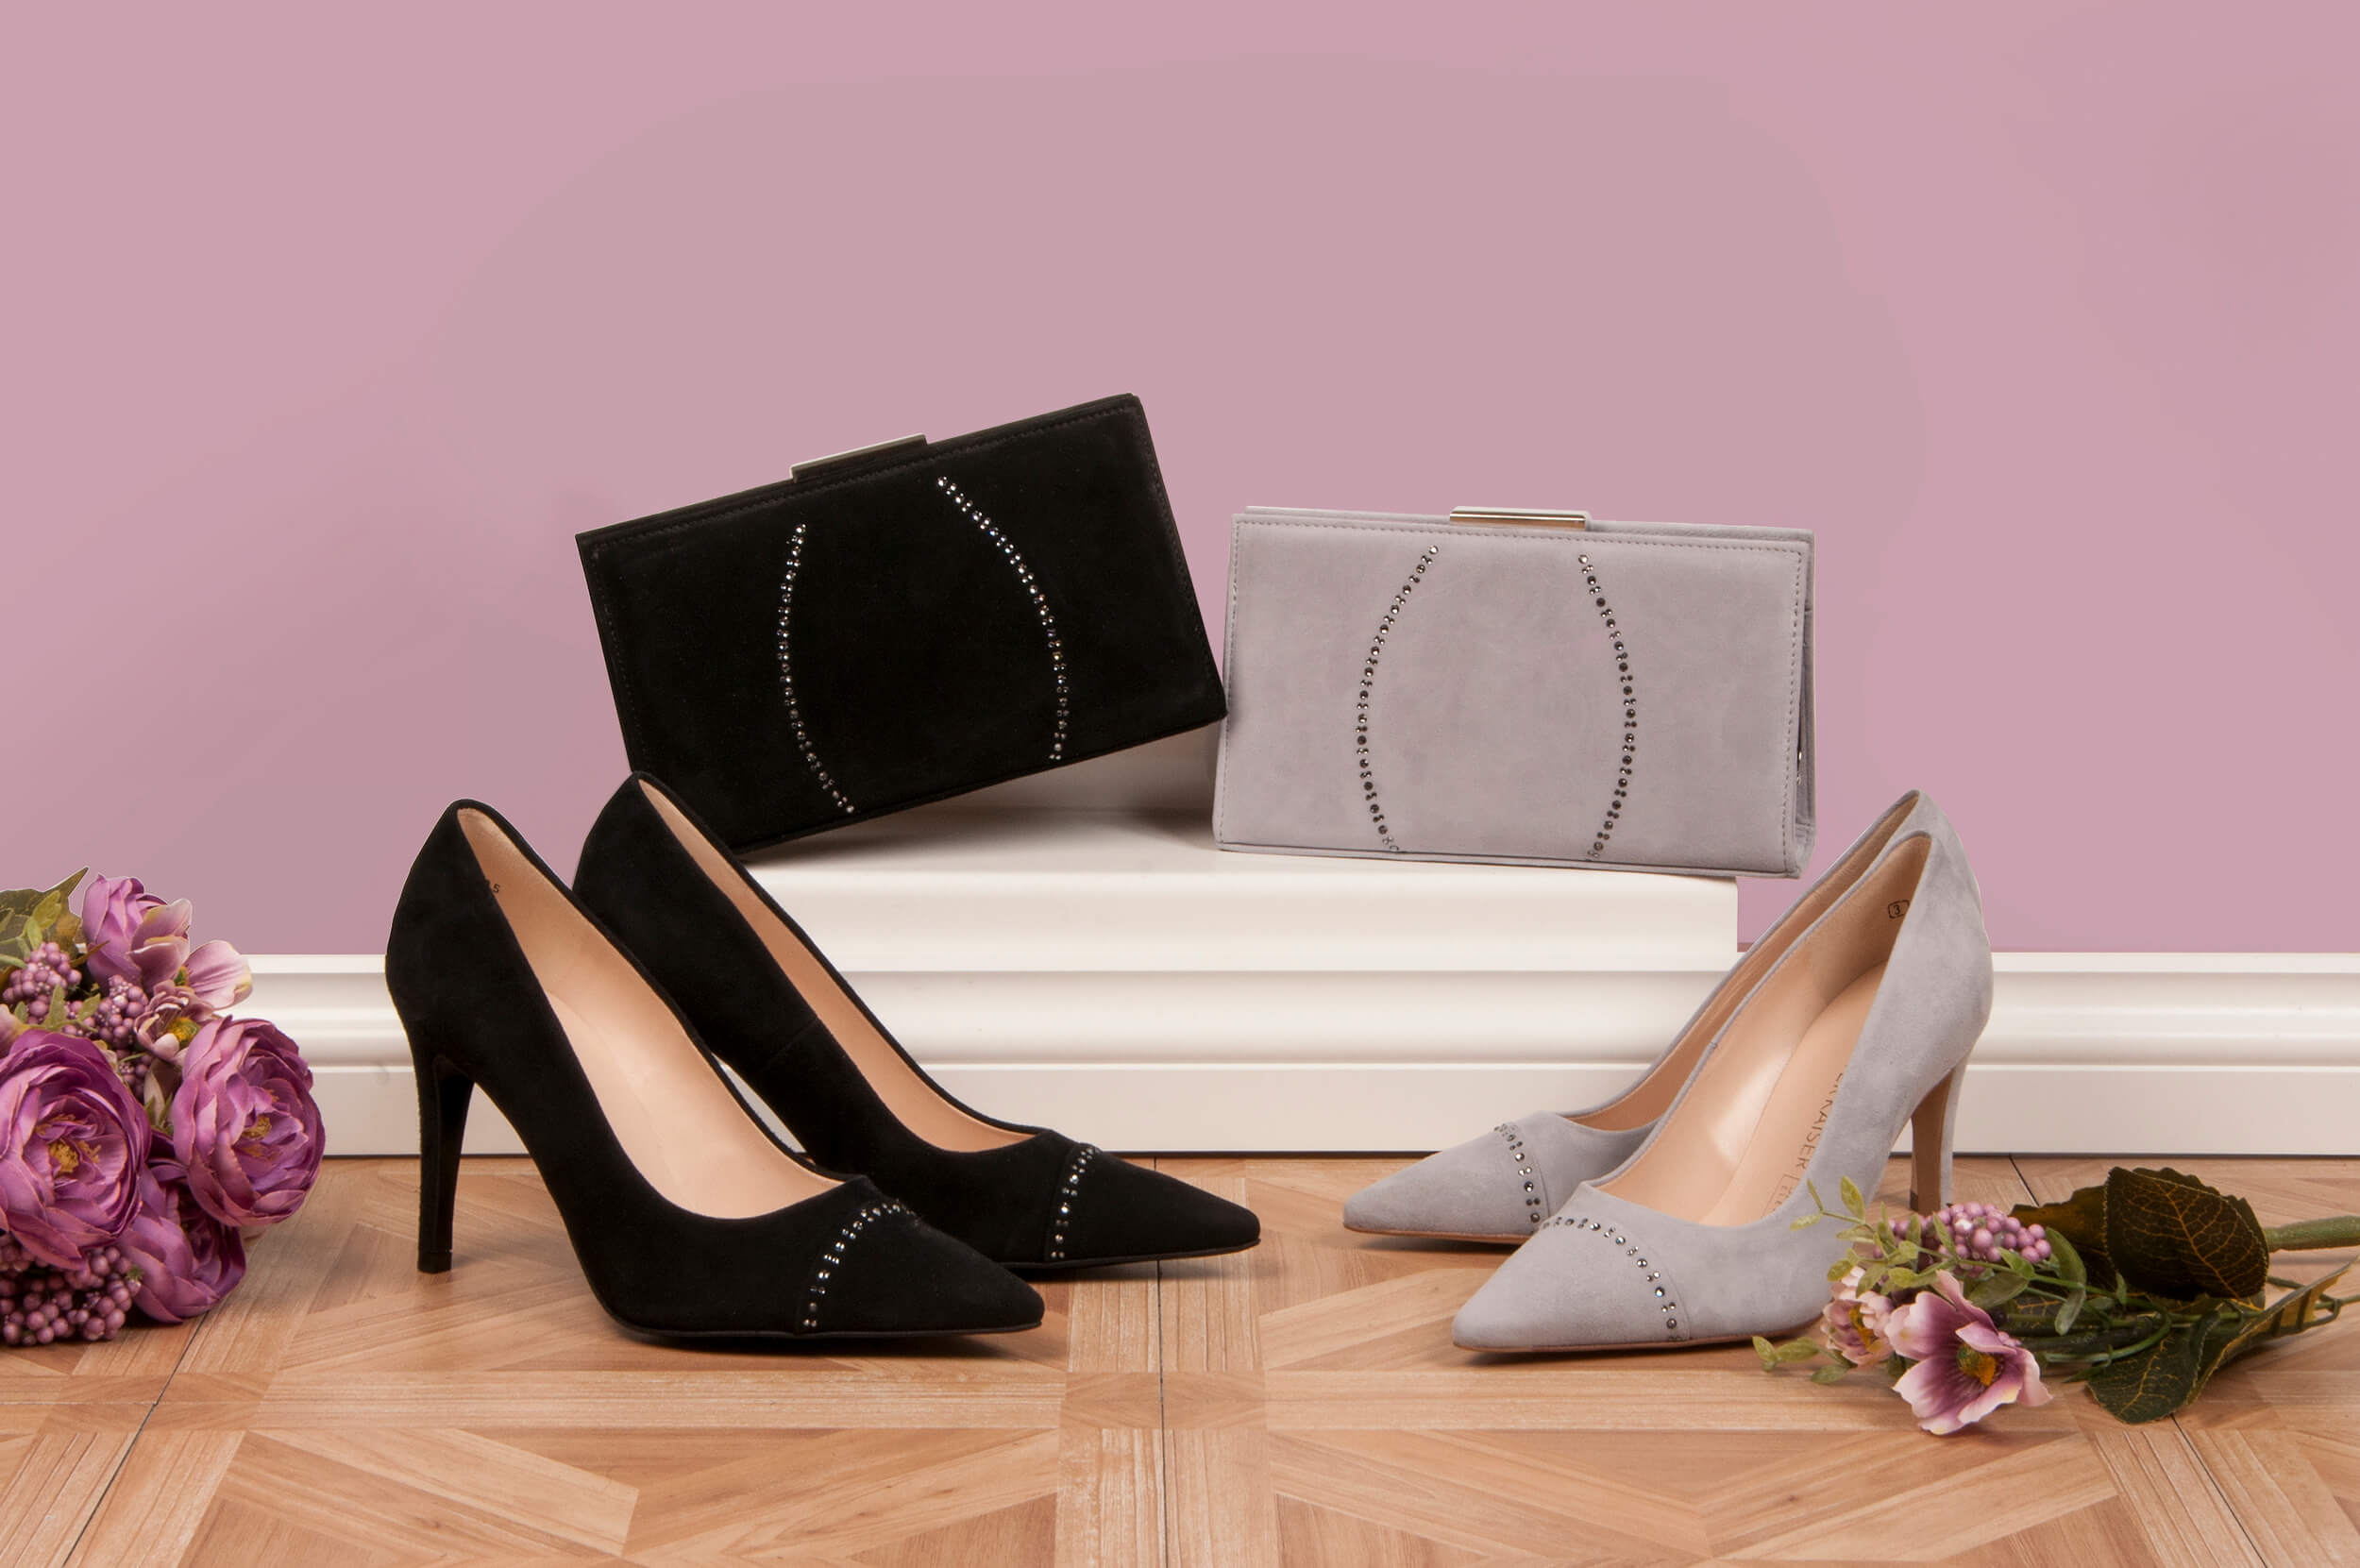 Occasion shoes and matching bags